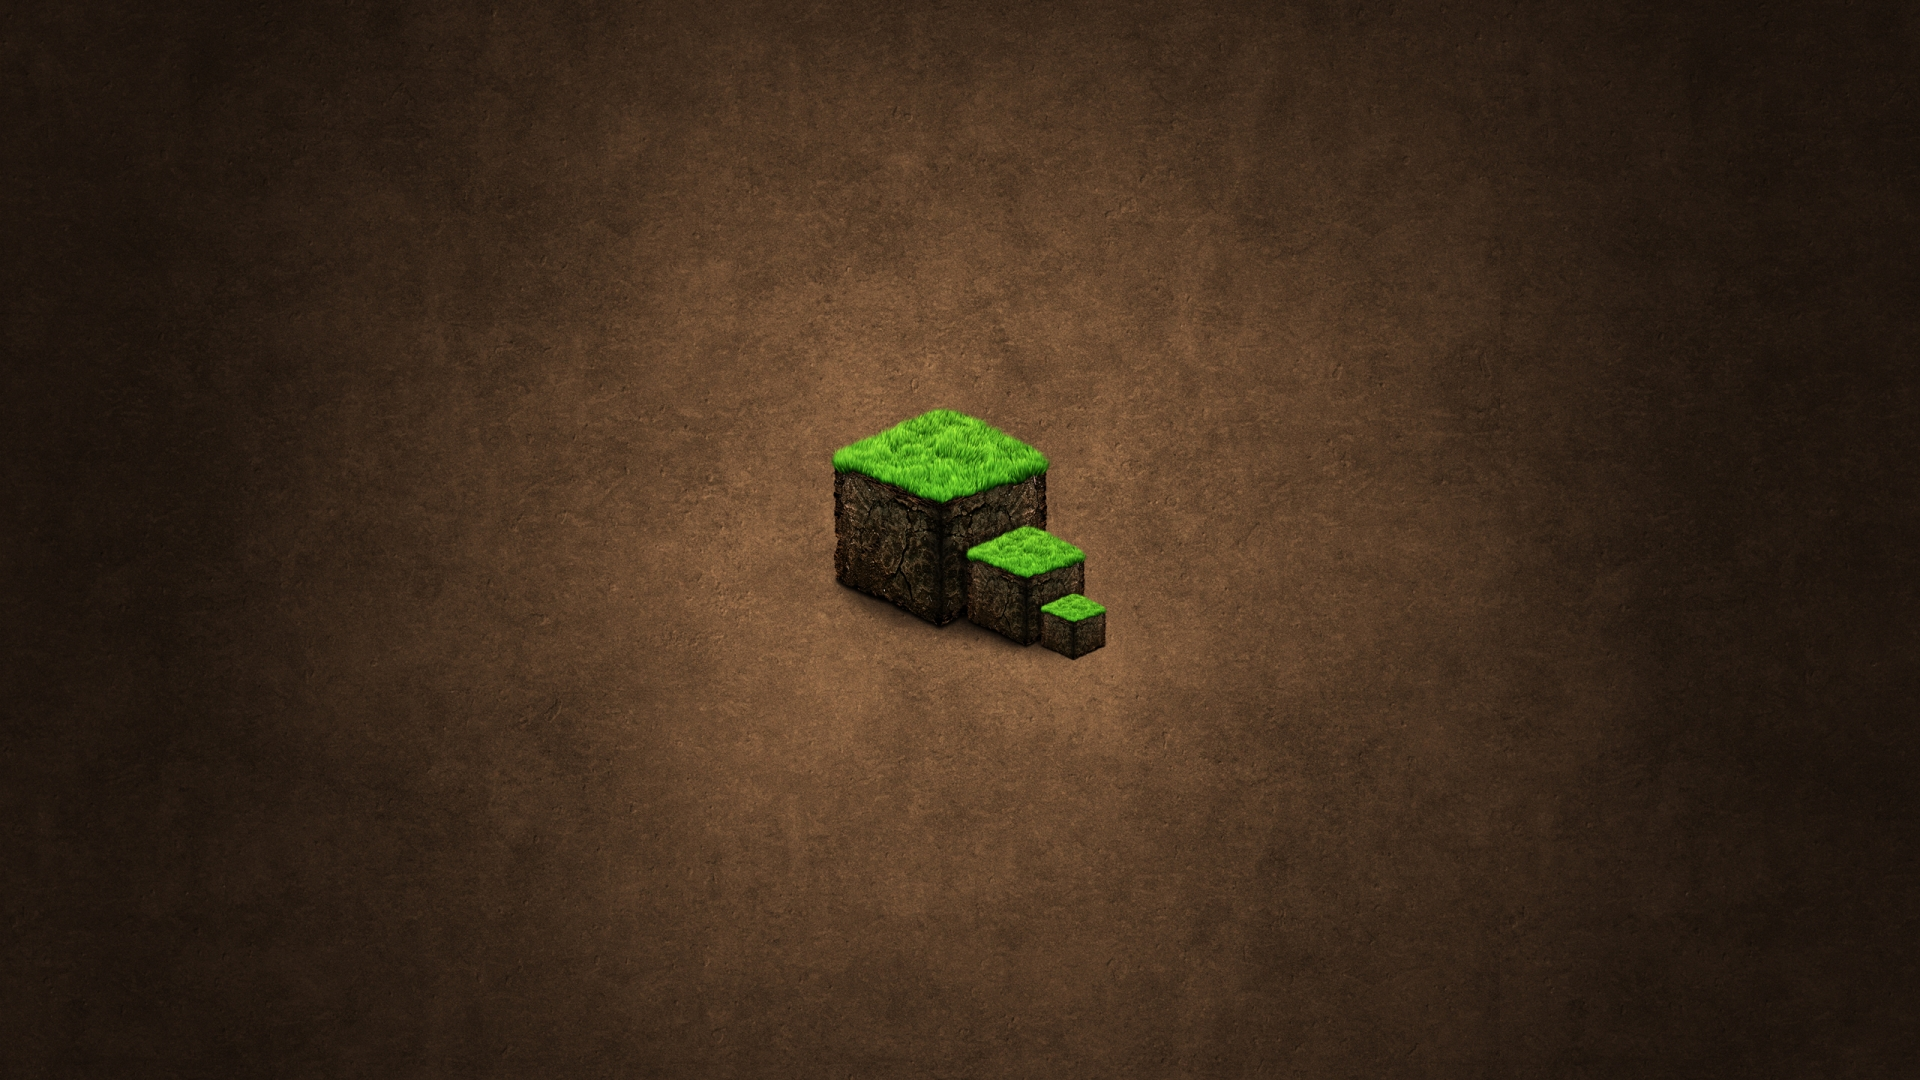 wallpapers minecraft awesome wallpaper 1920x1080 1920x1080